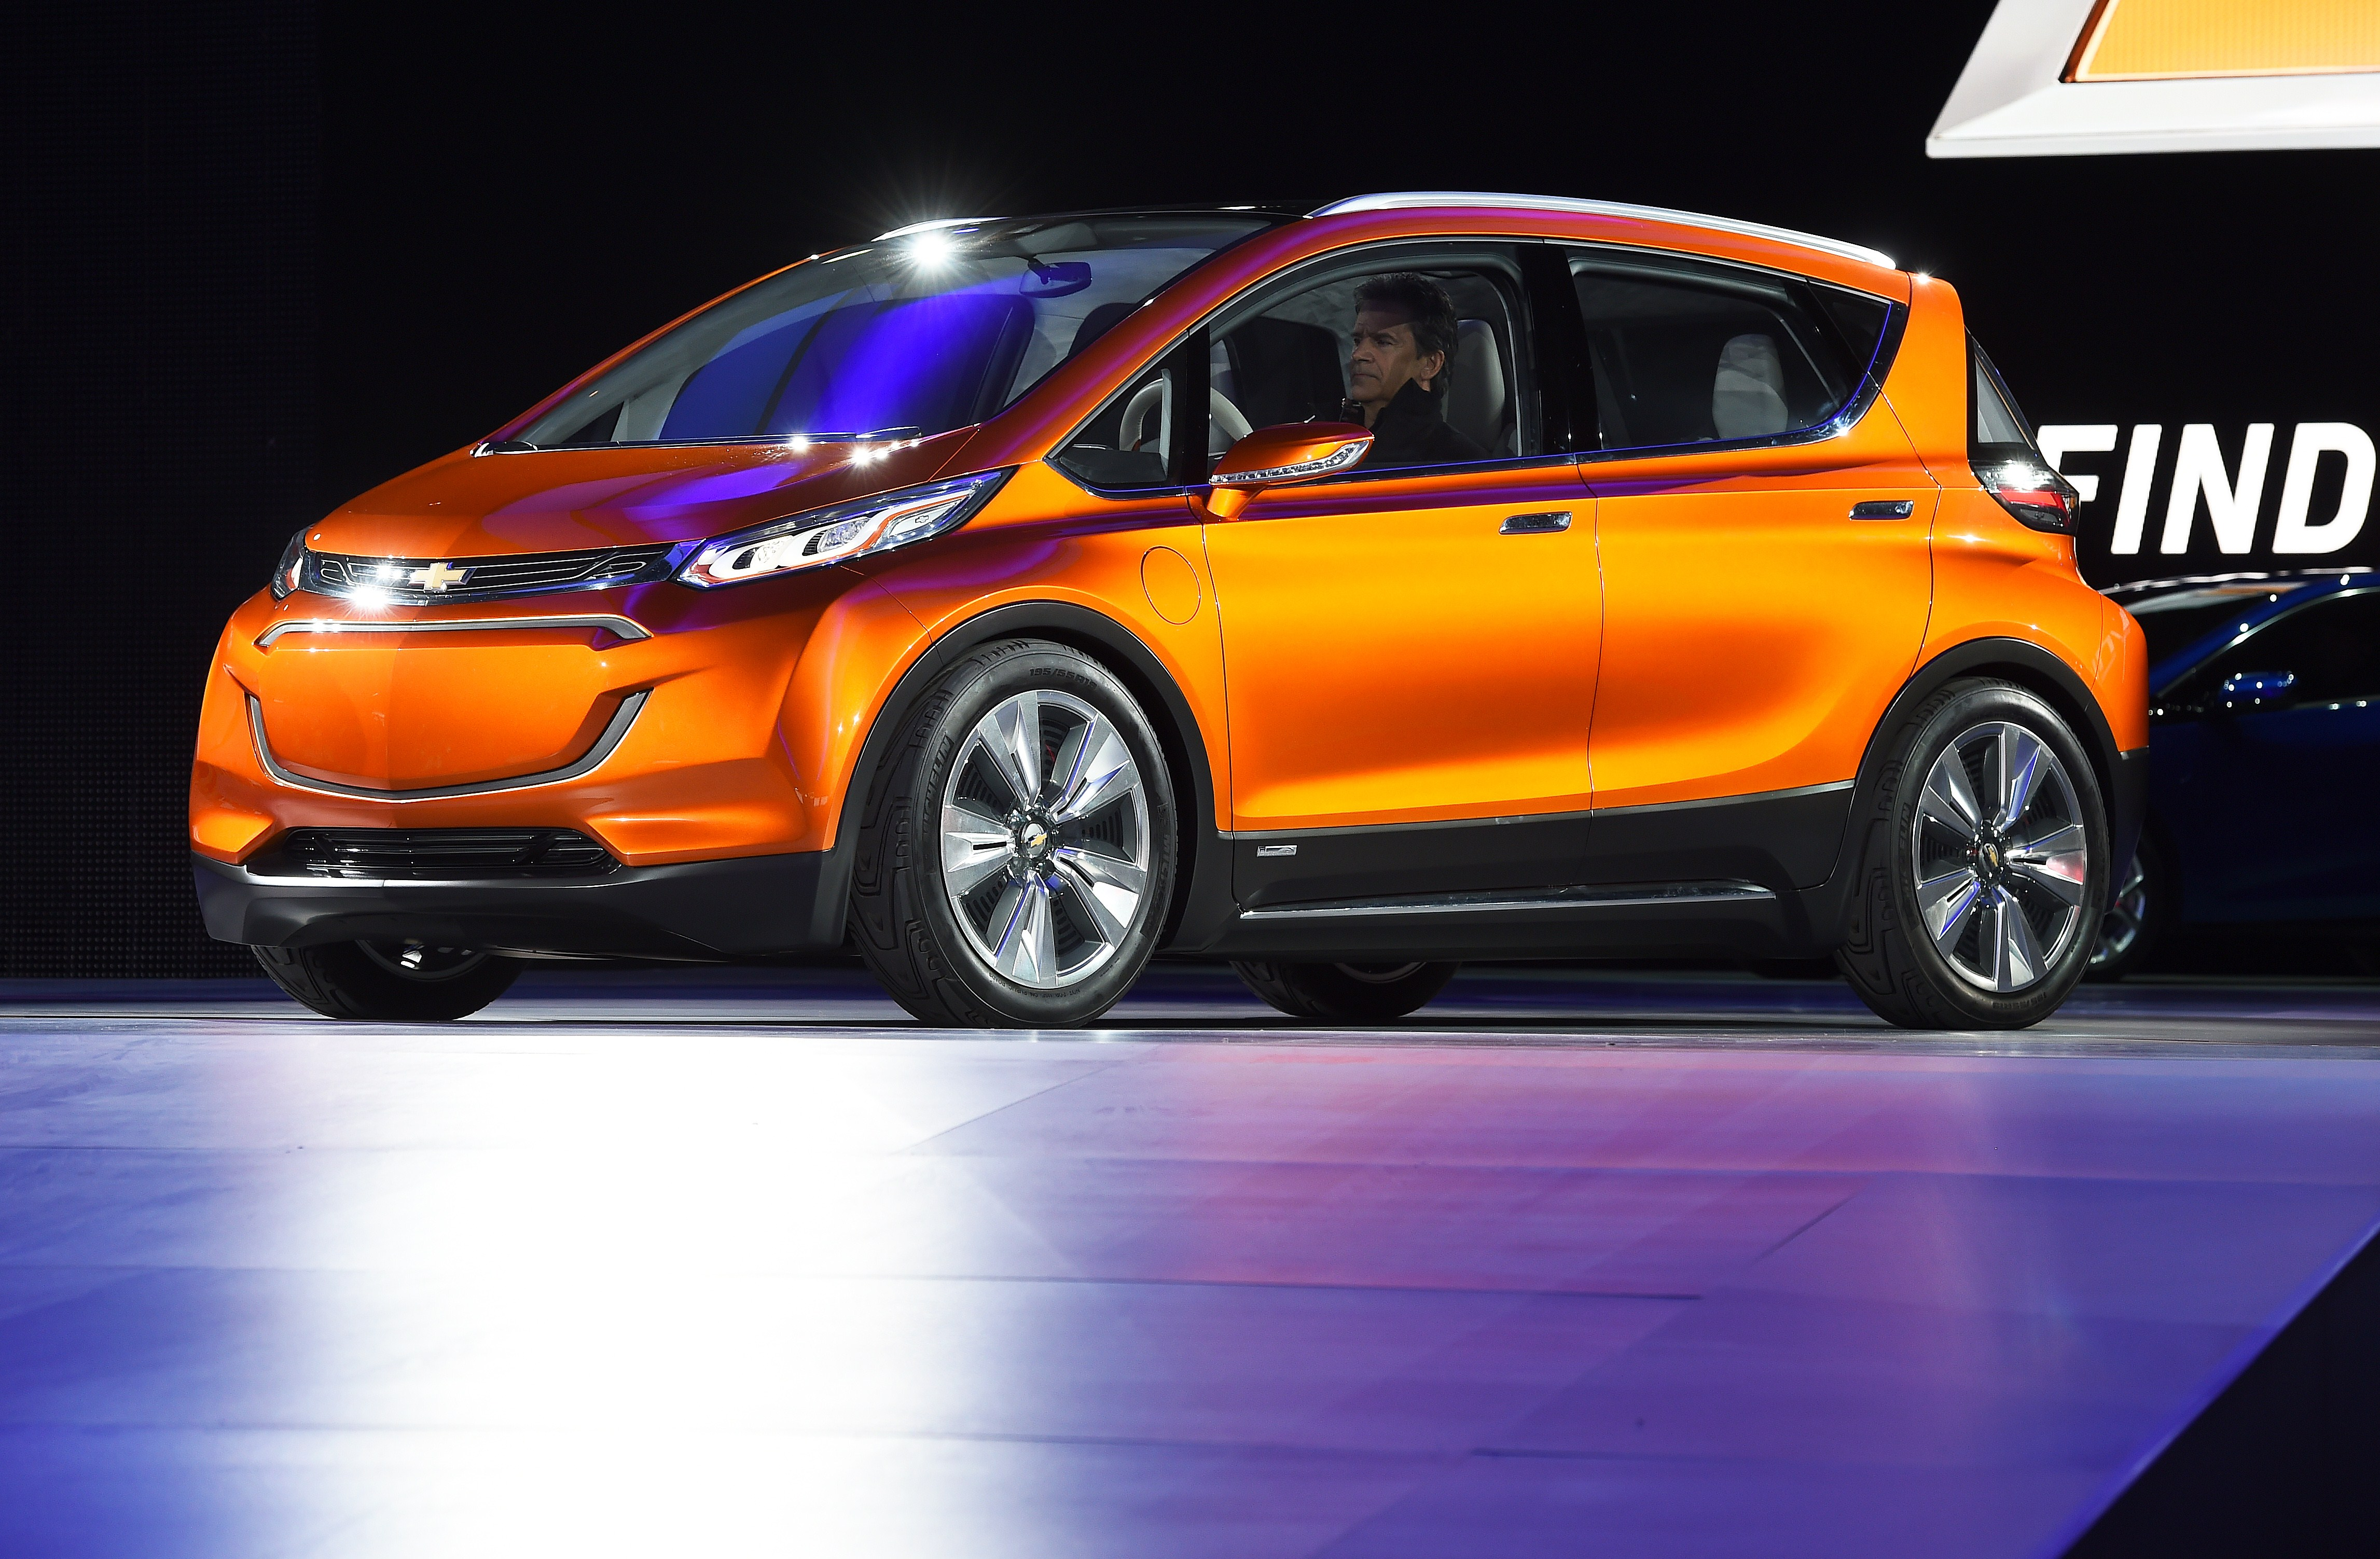 Chevrolet reveals their electric concept car Bolt EV to the media at The North American International Auto Show in Detroit, Michigan, on January 12, 2015.